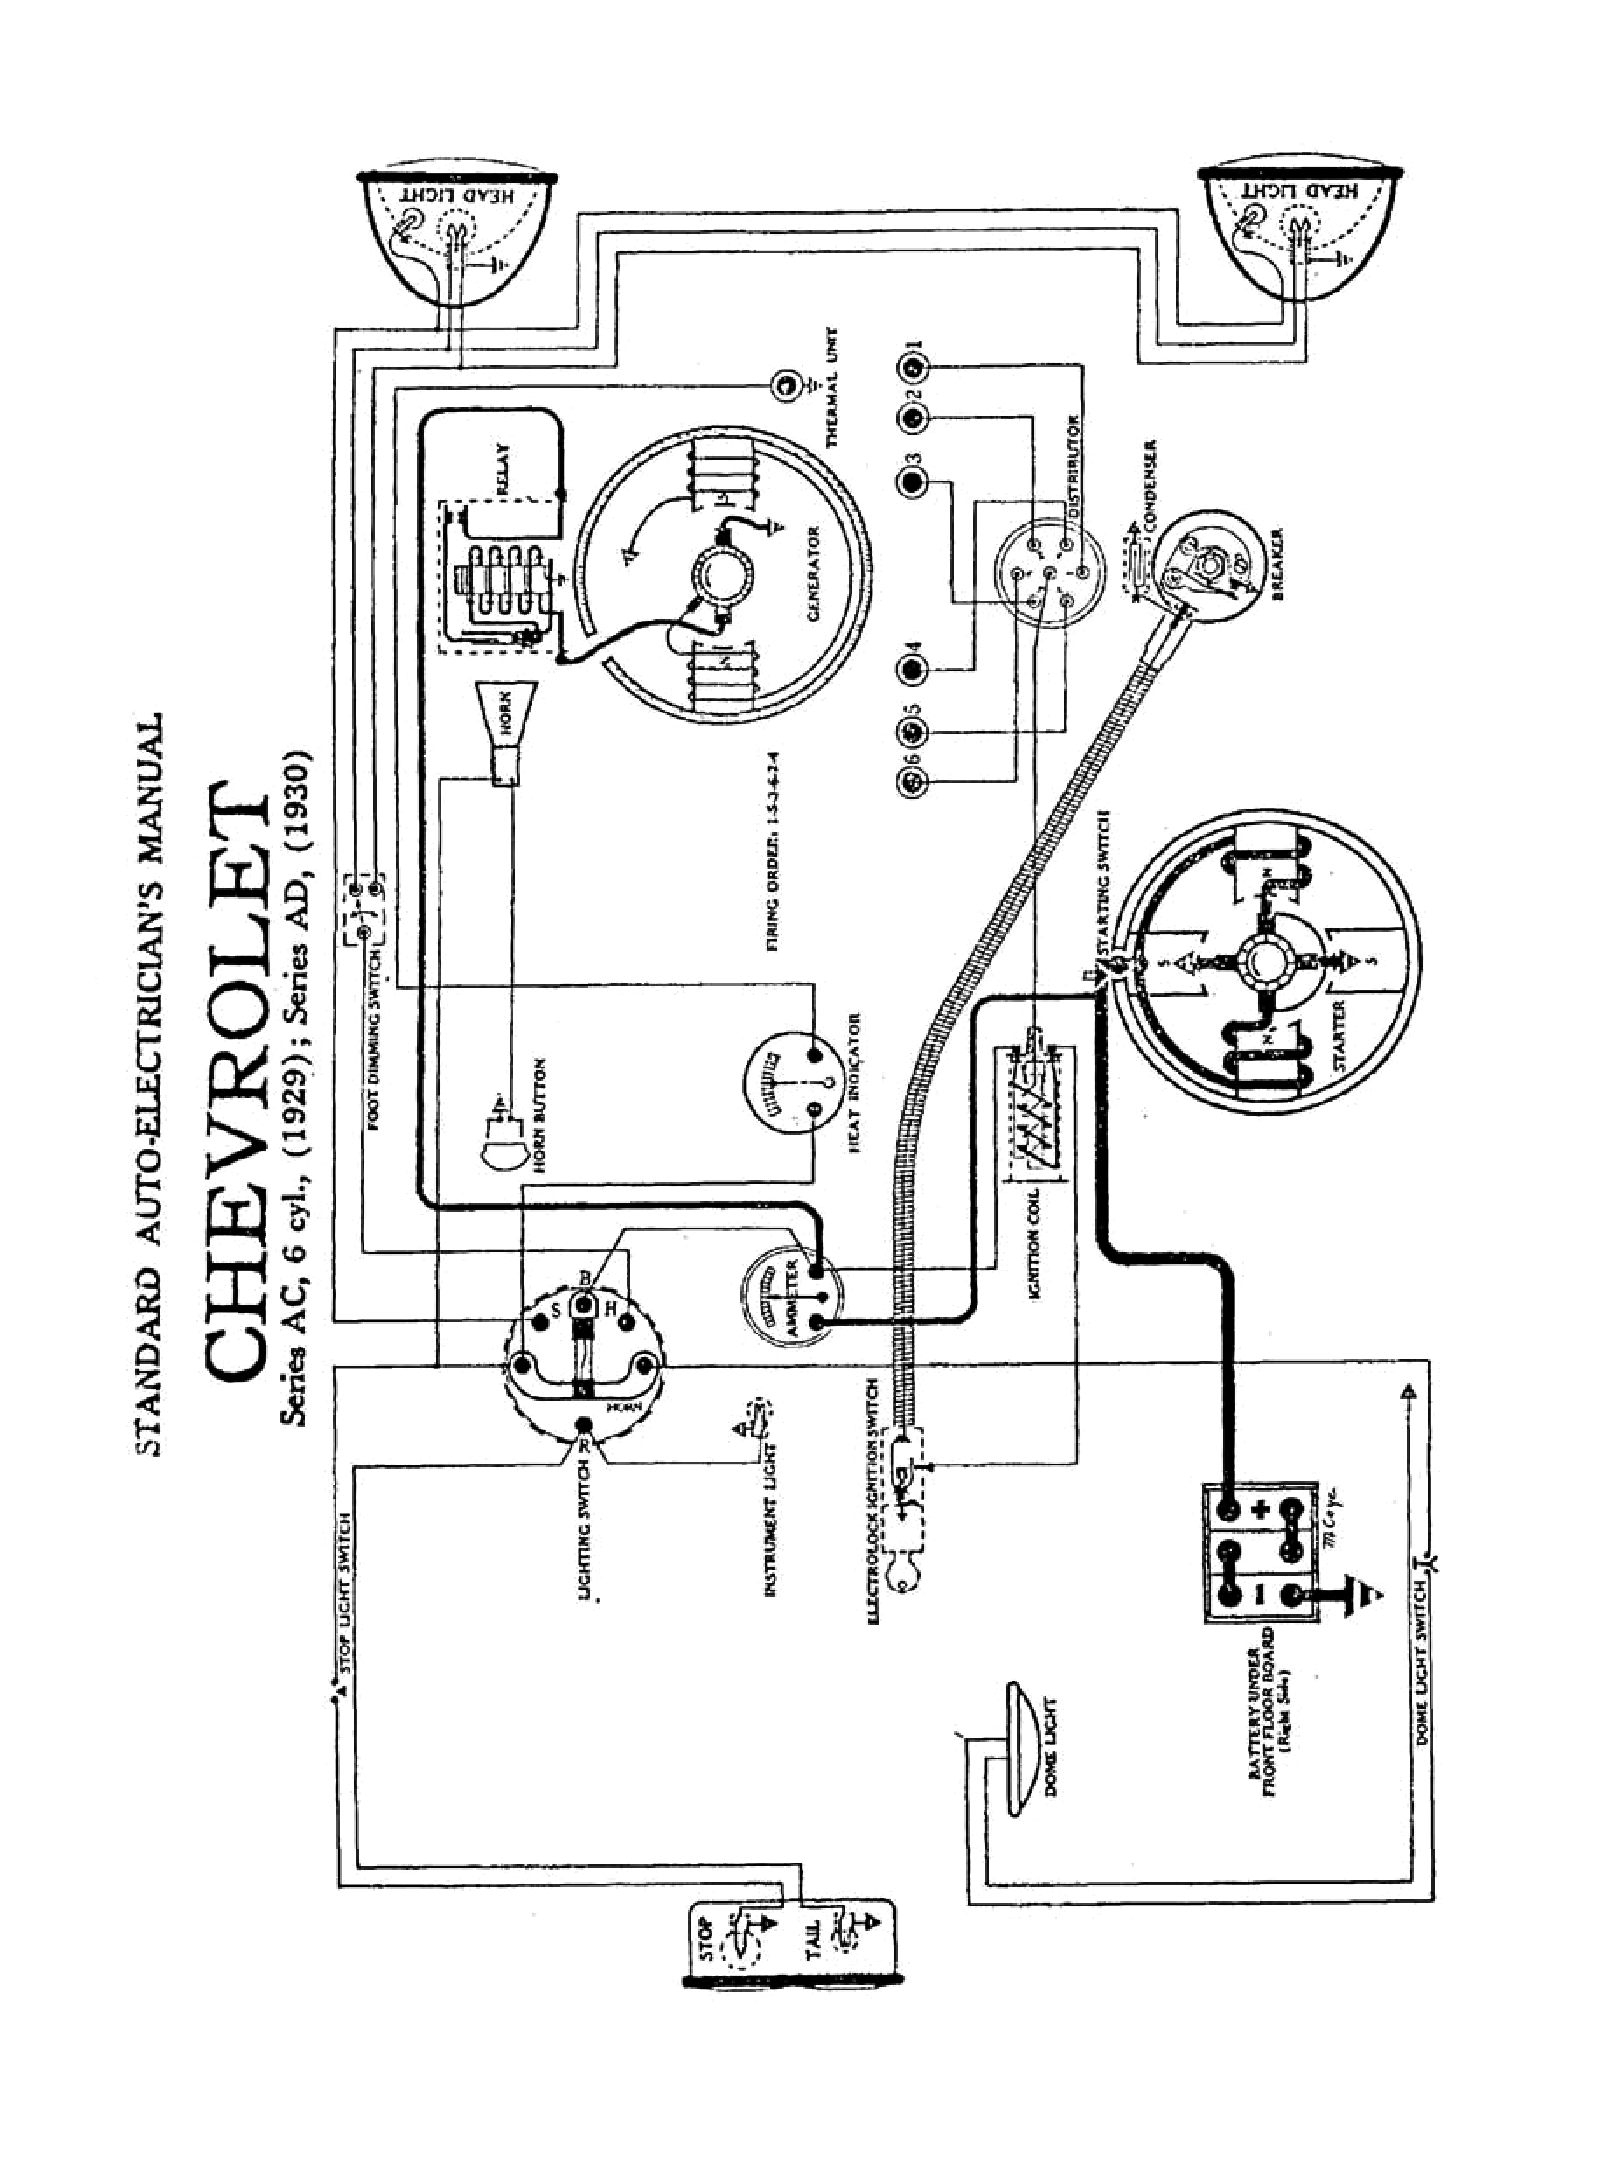 1949 Chev Wiring | Wiring Diagram - Mercury Outboard Ignition Switch Wiring Diagram